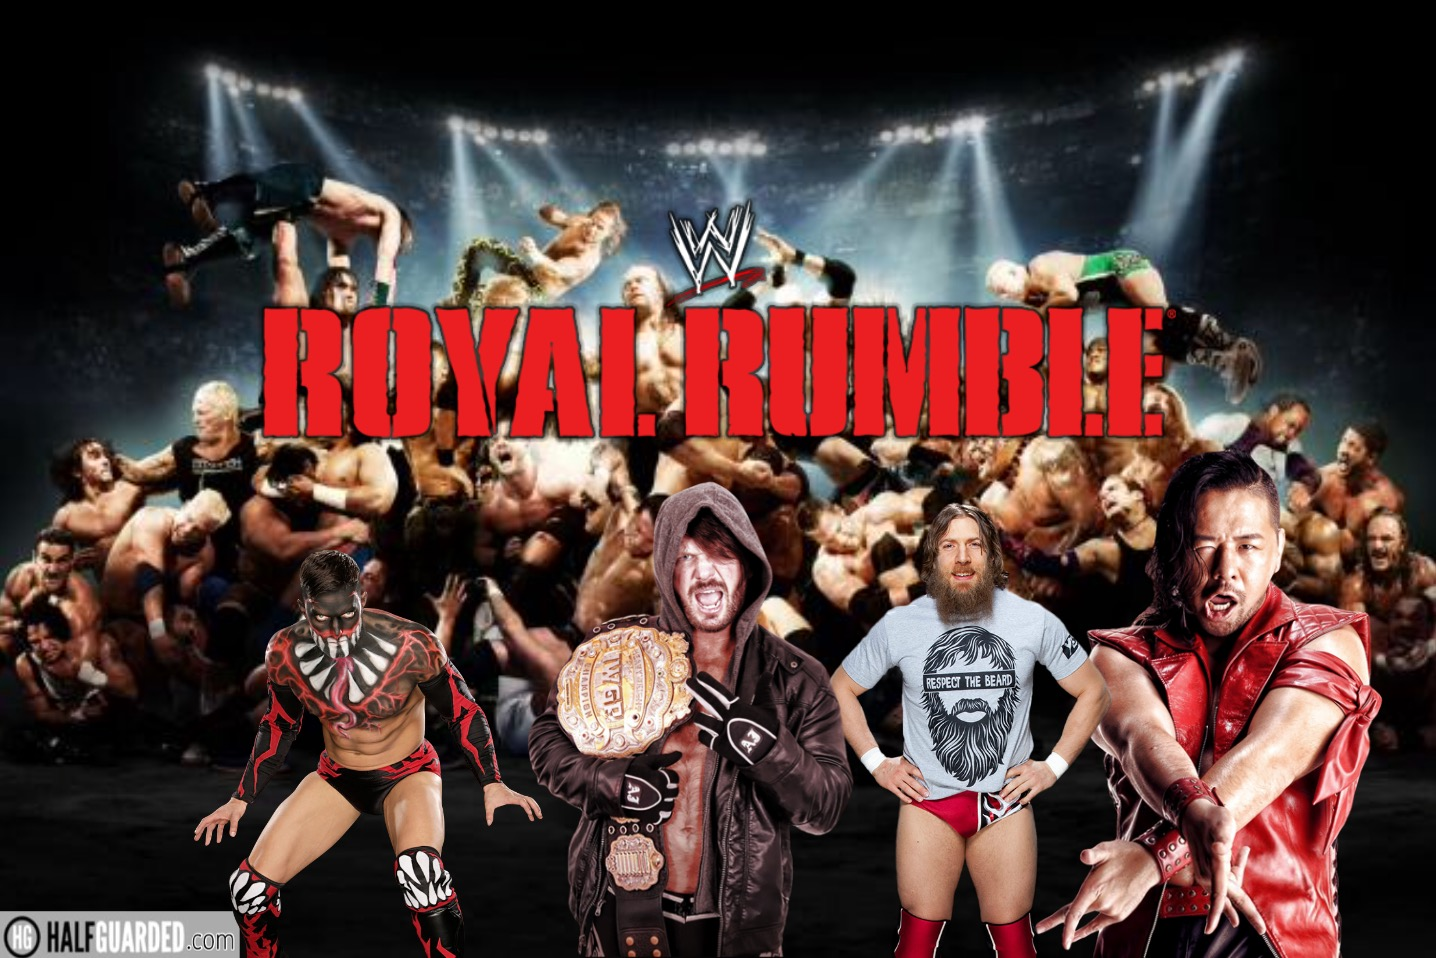 How to Watch WWE Royal Rumble 2018 Free Live Stream Online